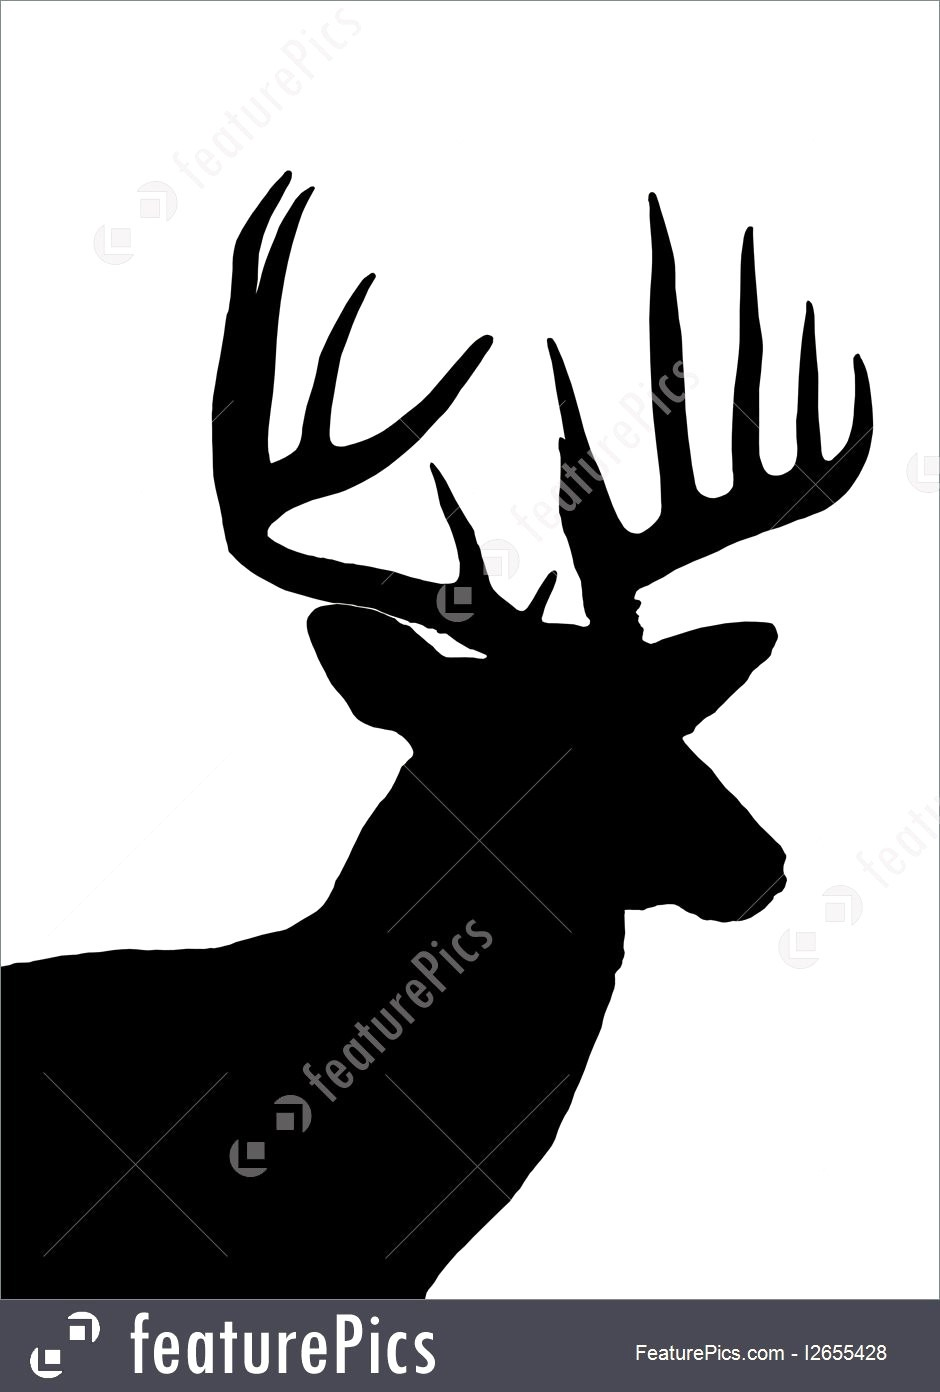 Kisspng White Tailed Deer Silhouette Clip Art Head 5ac1c8f509d714